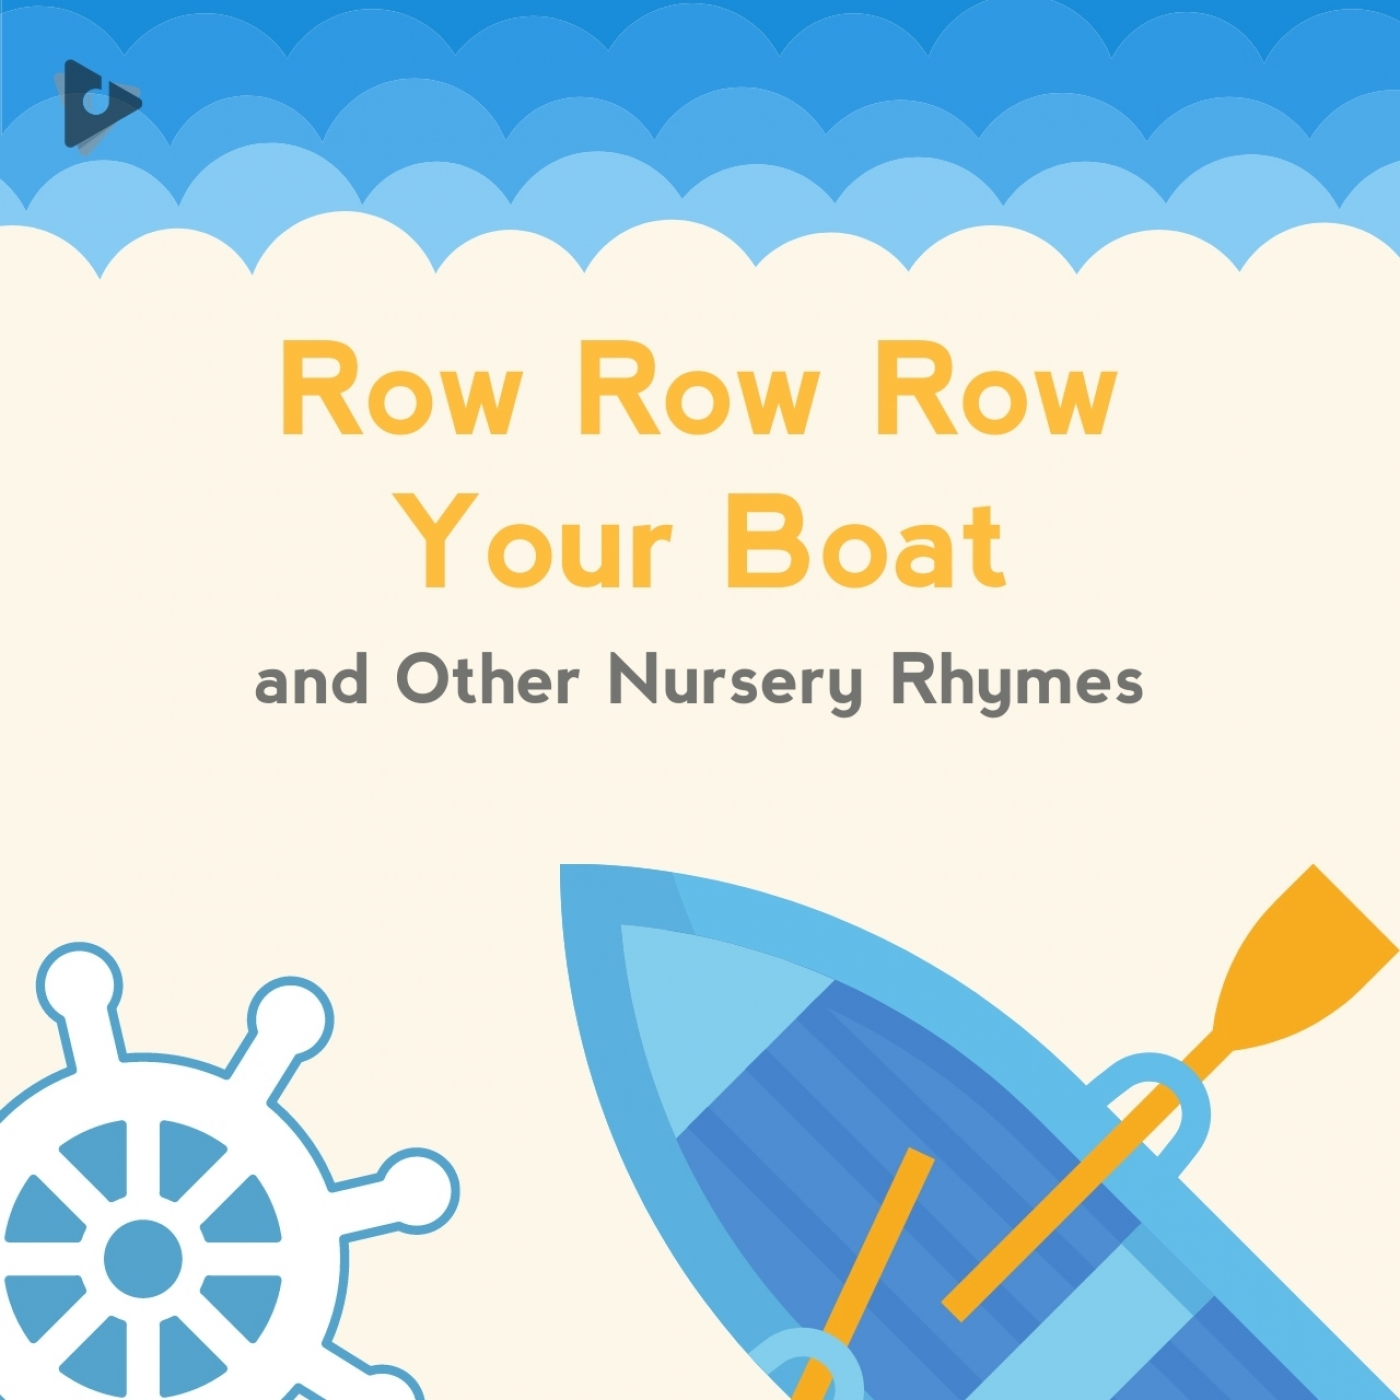 Row Row Row Your Boat and Other Nursery Rhymes